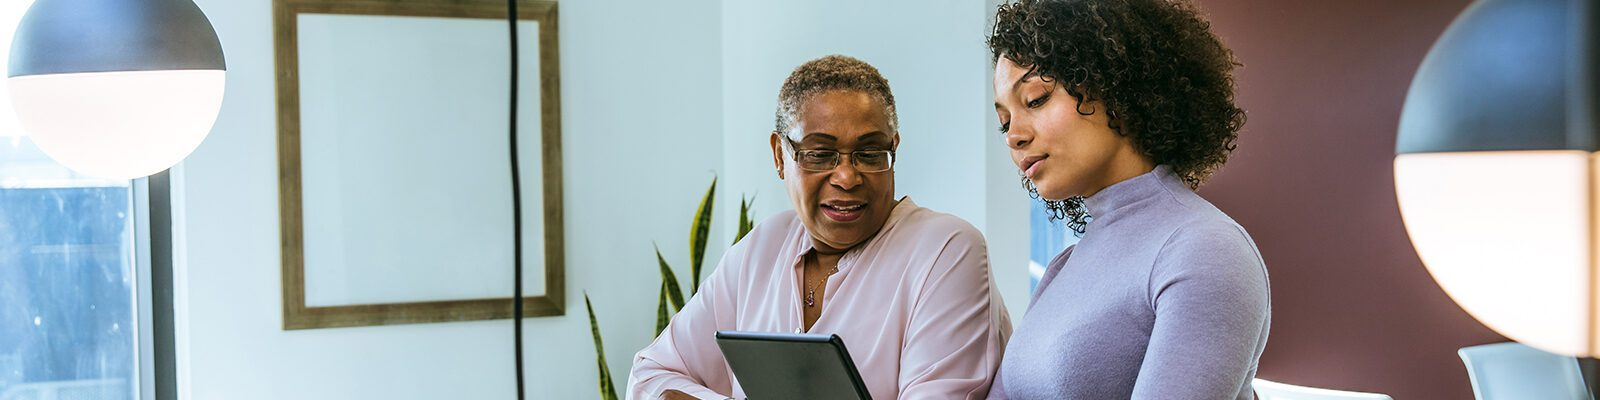 Two women look at a tablet computer